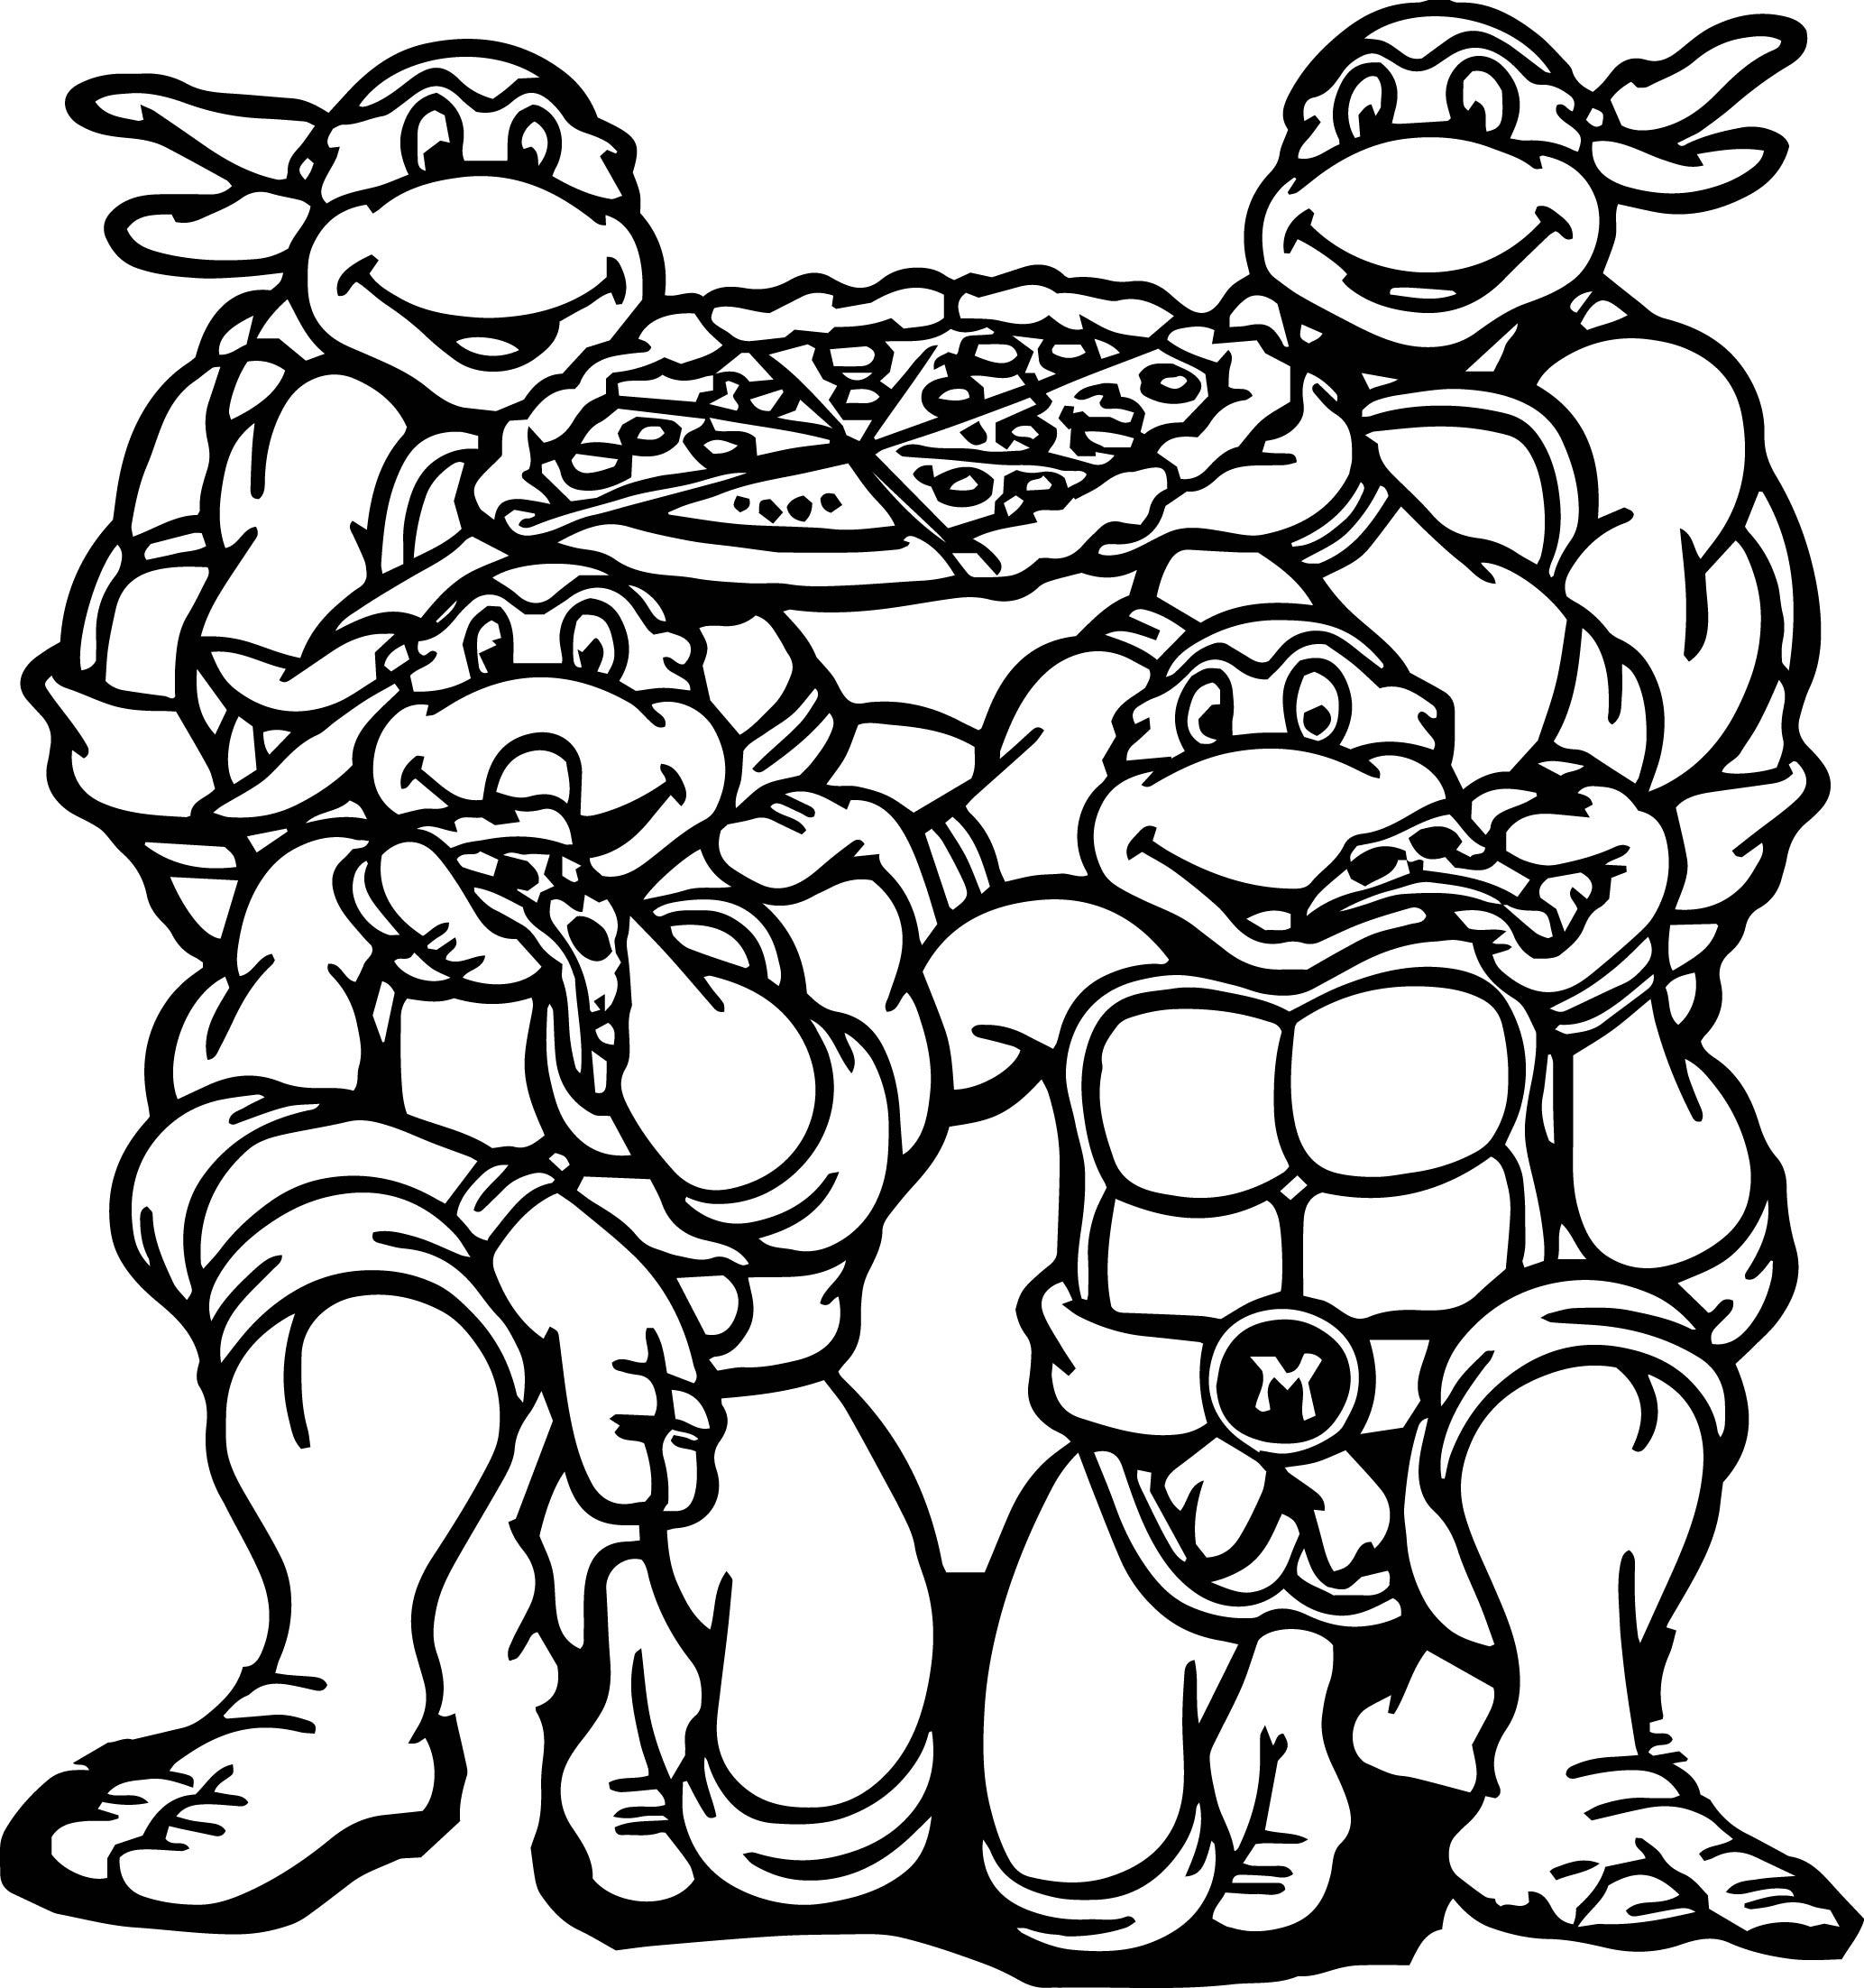 2067x2204 Tmnt Coloring Pages In Pretty Print Image Printable Within